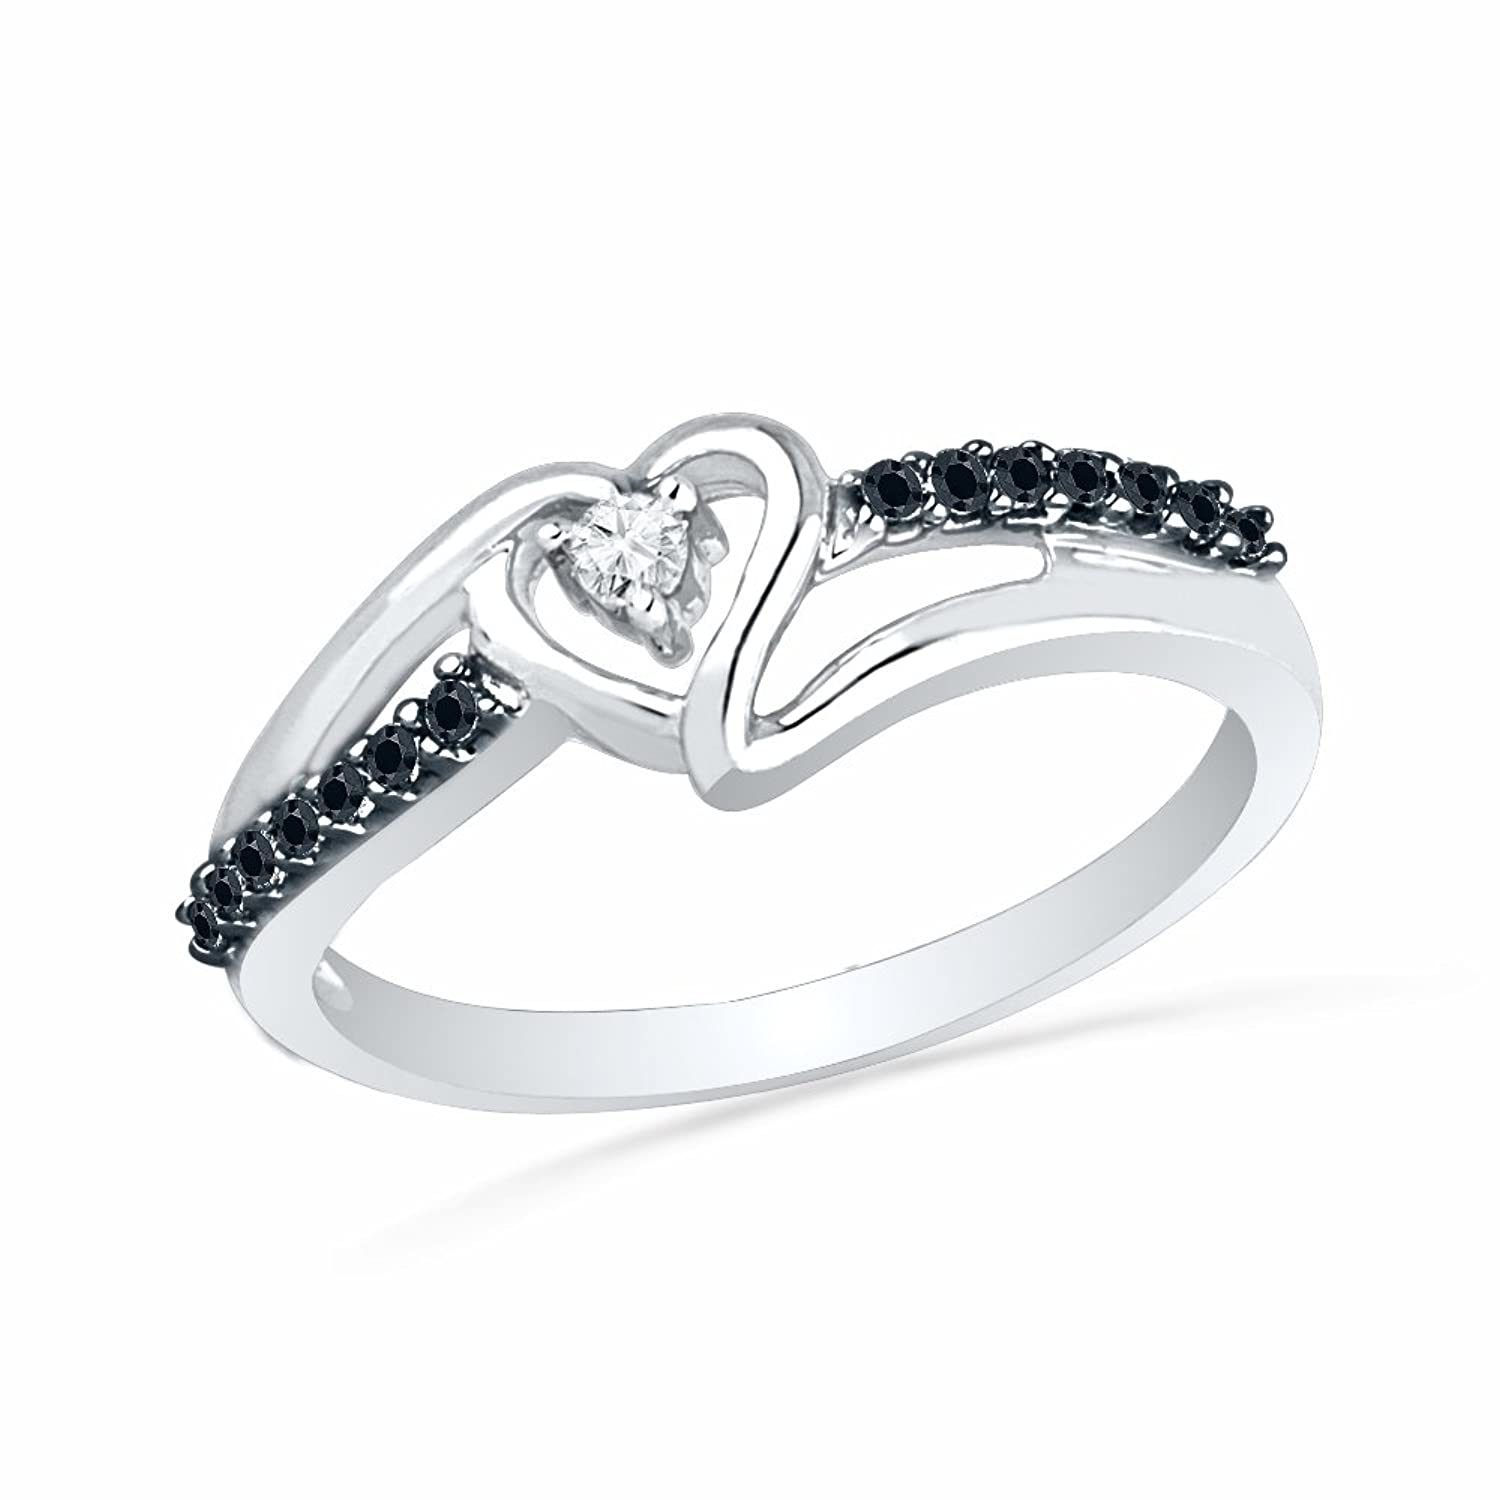 best symbol ring love endless silver quality sterling fashion for friend wholesale rings infinity high gift women